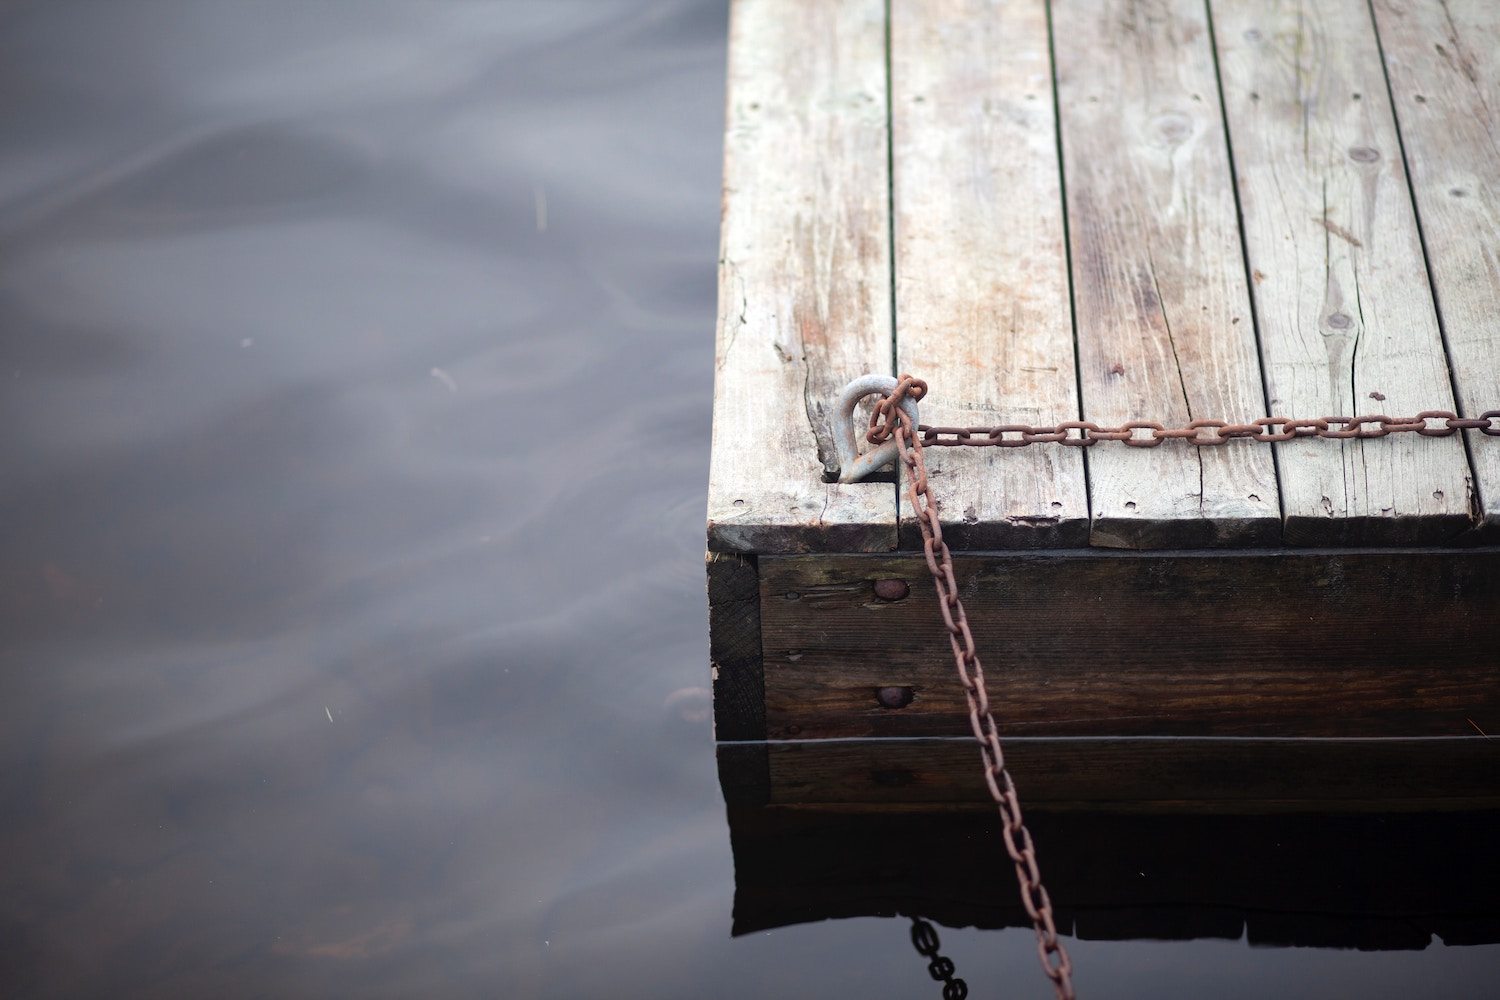 Boat tied to a dock on a lake in Southern Maine.